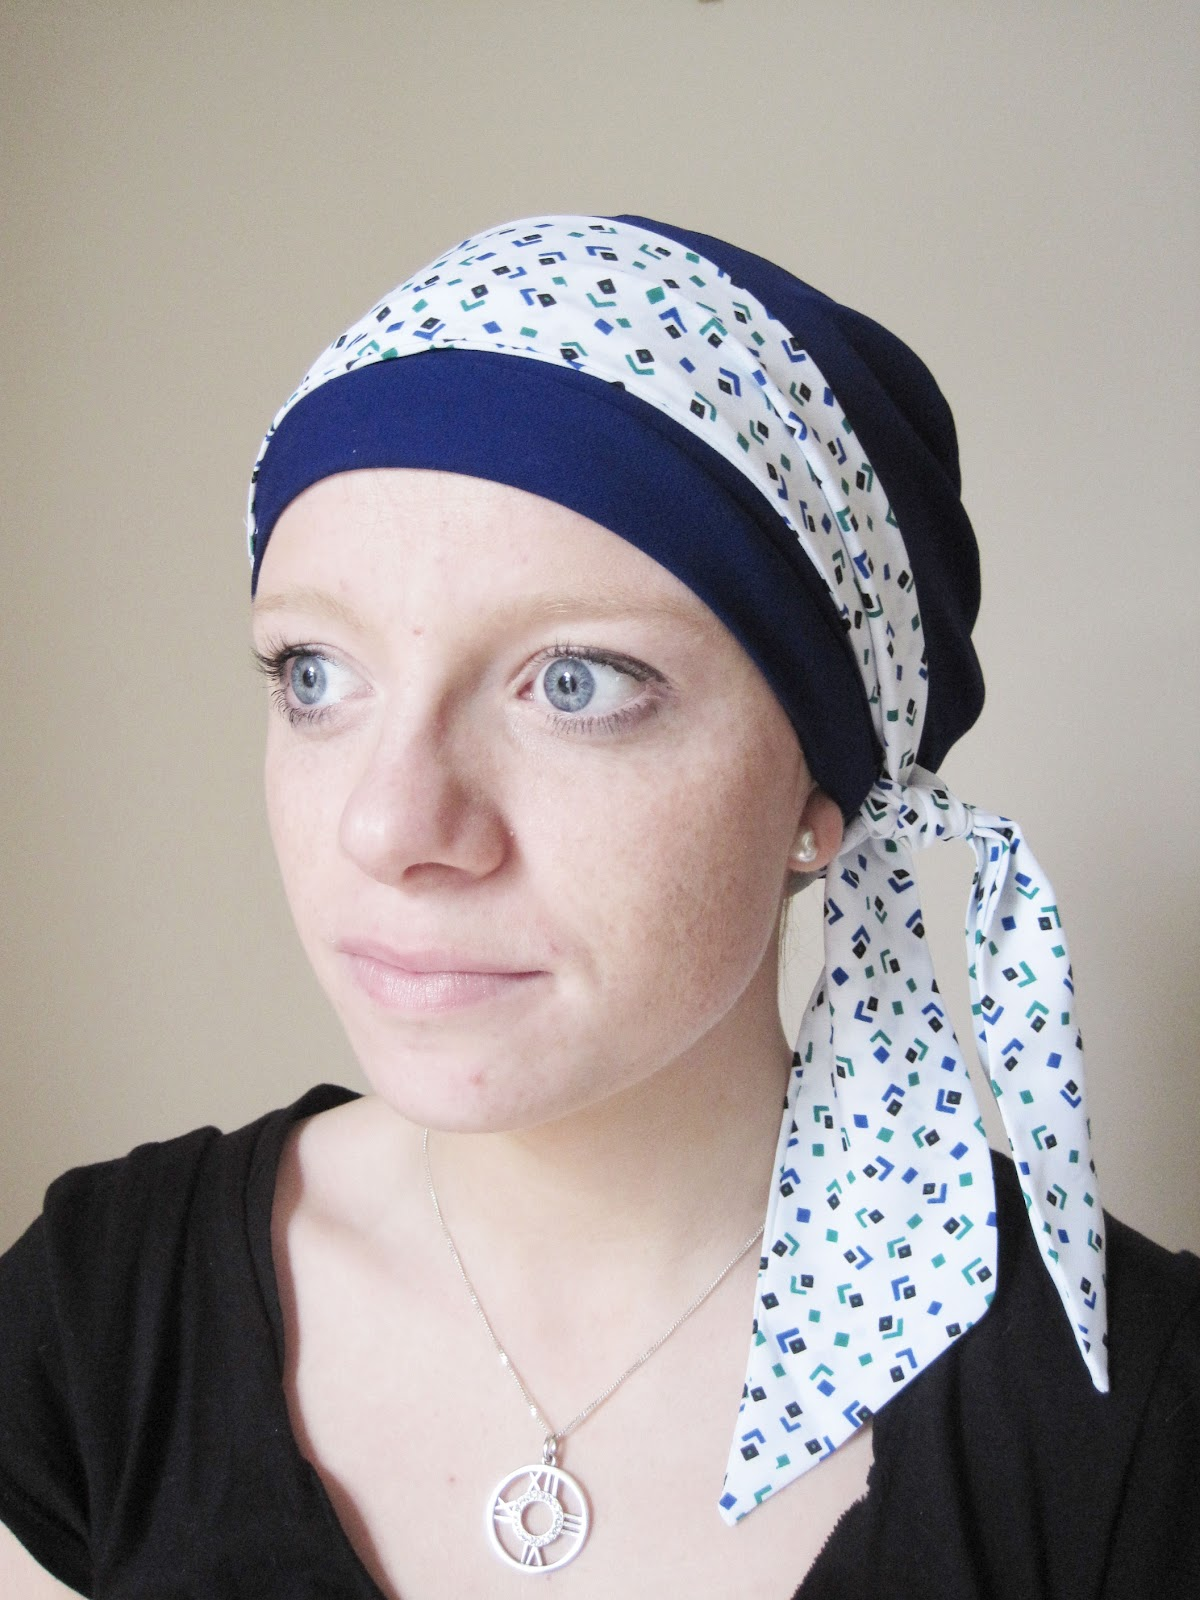 Feelgood Scarves: New hats for Chemo Patients